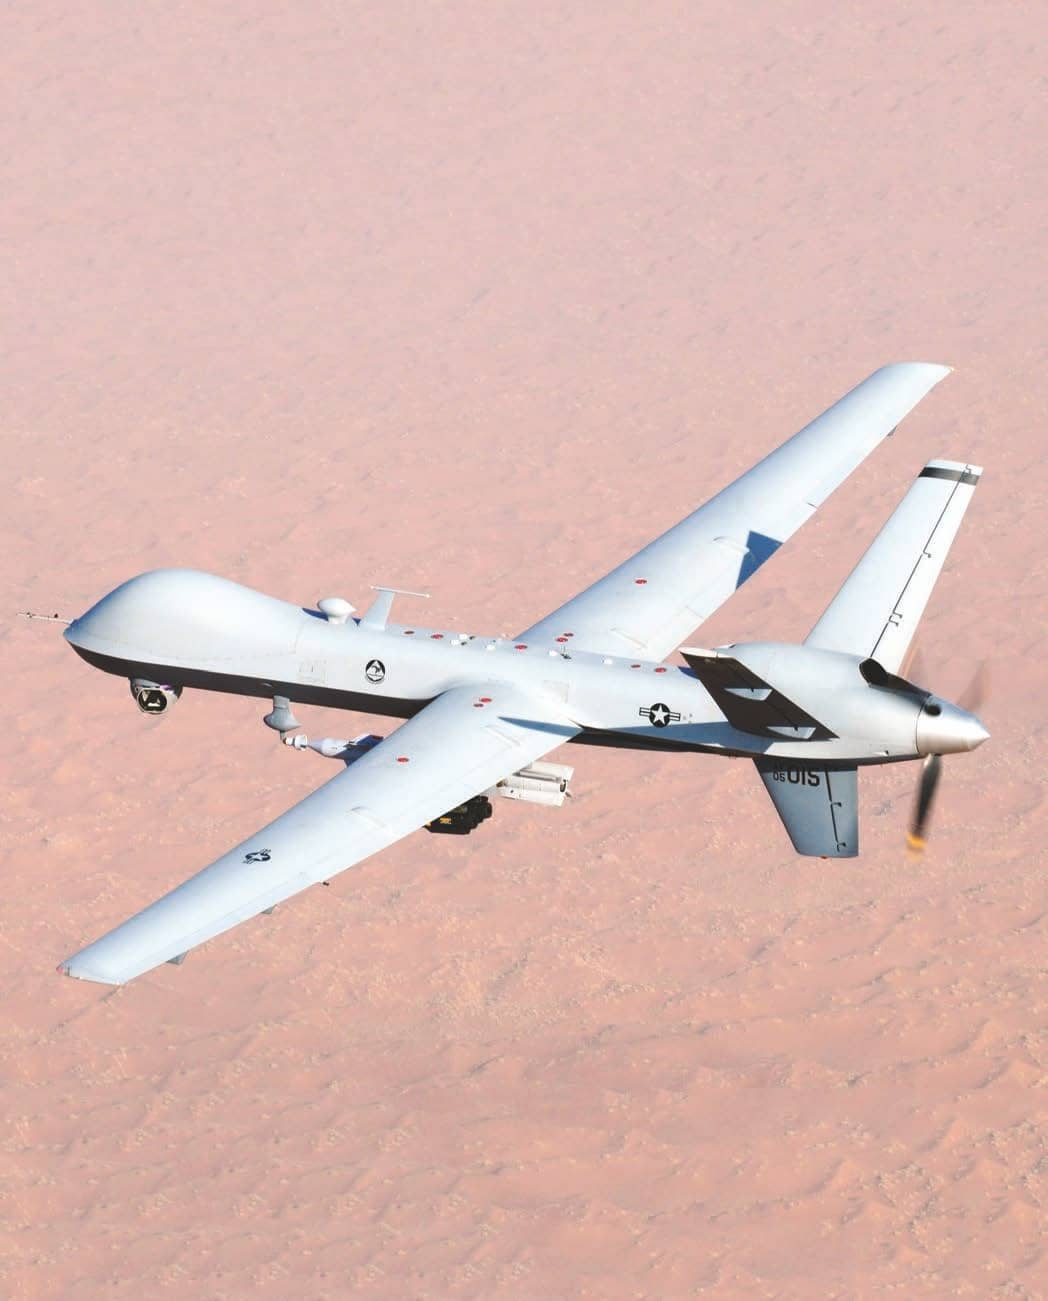 Drone Warfare Why India Must Stay Ahead Of The Curve